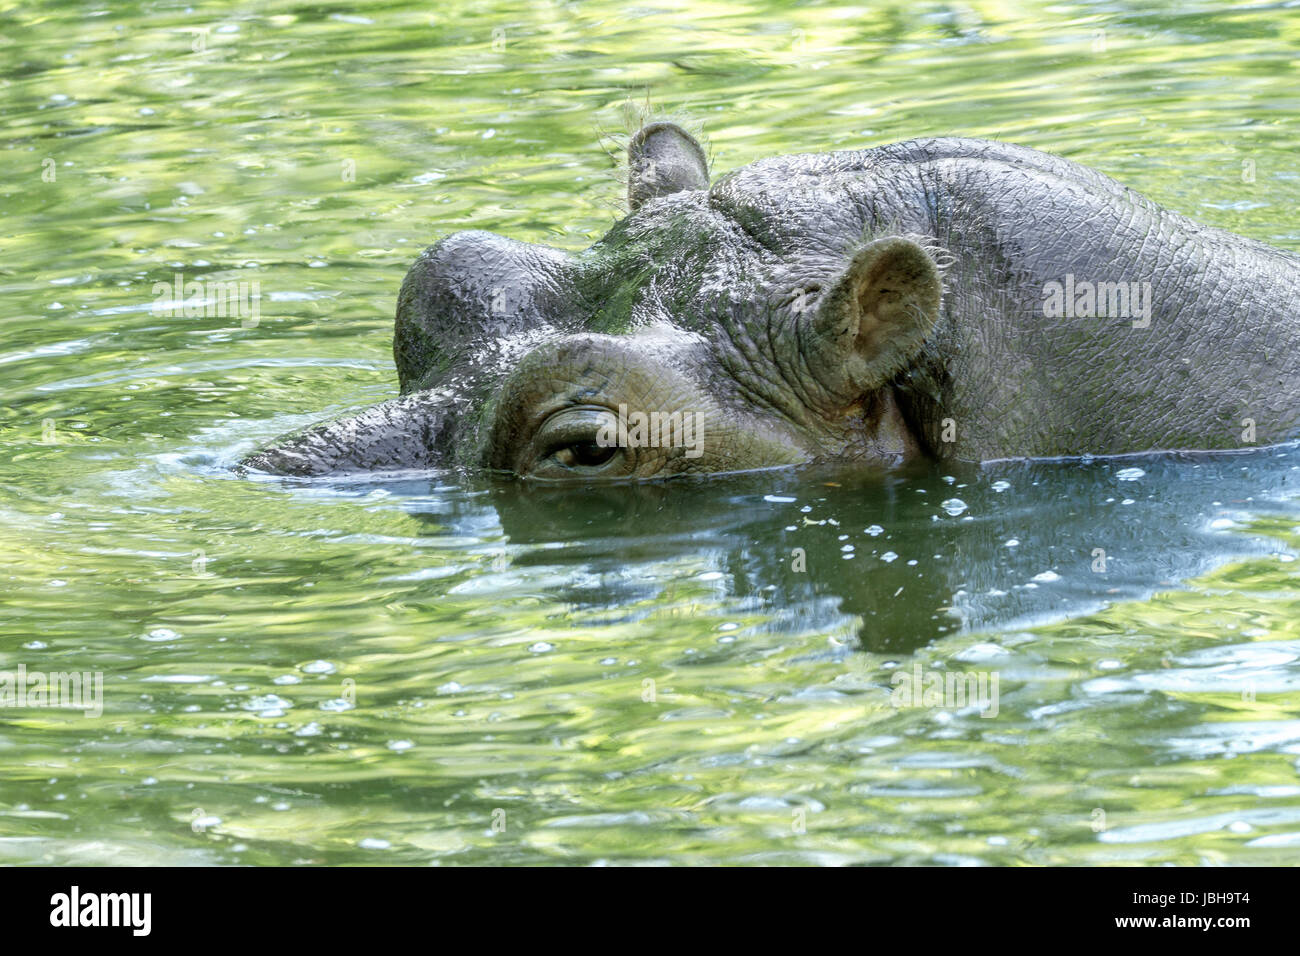 Image d'un grand mammifère d'un animal sauvage, d'hippopotame dans l'eau Photo Stock